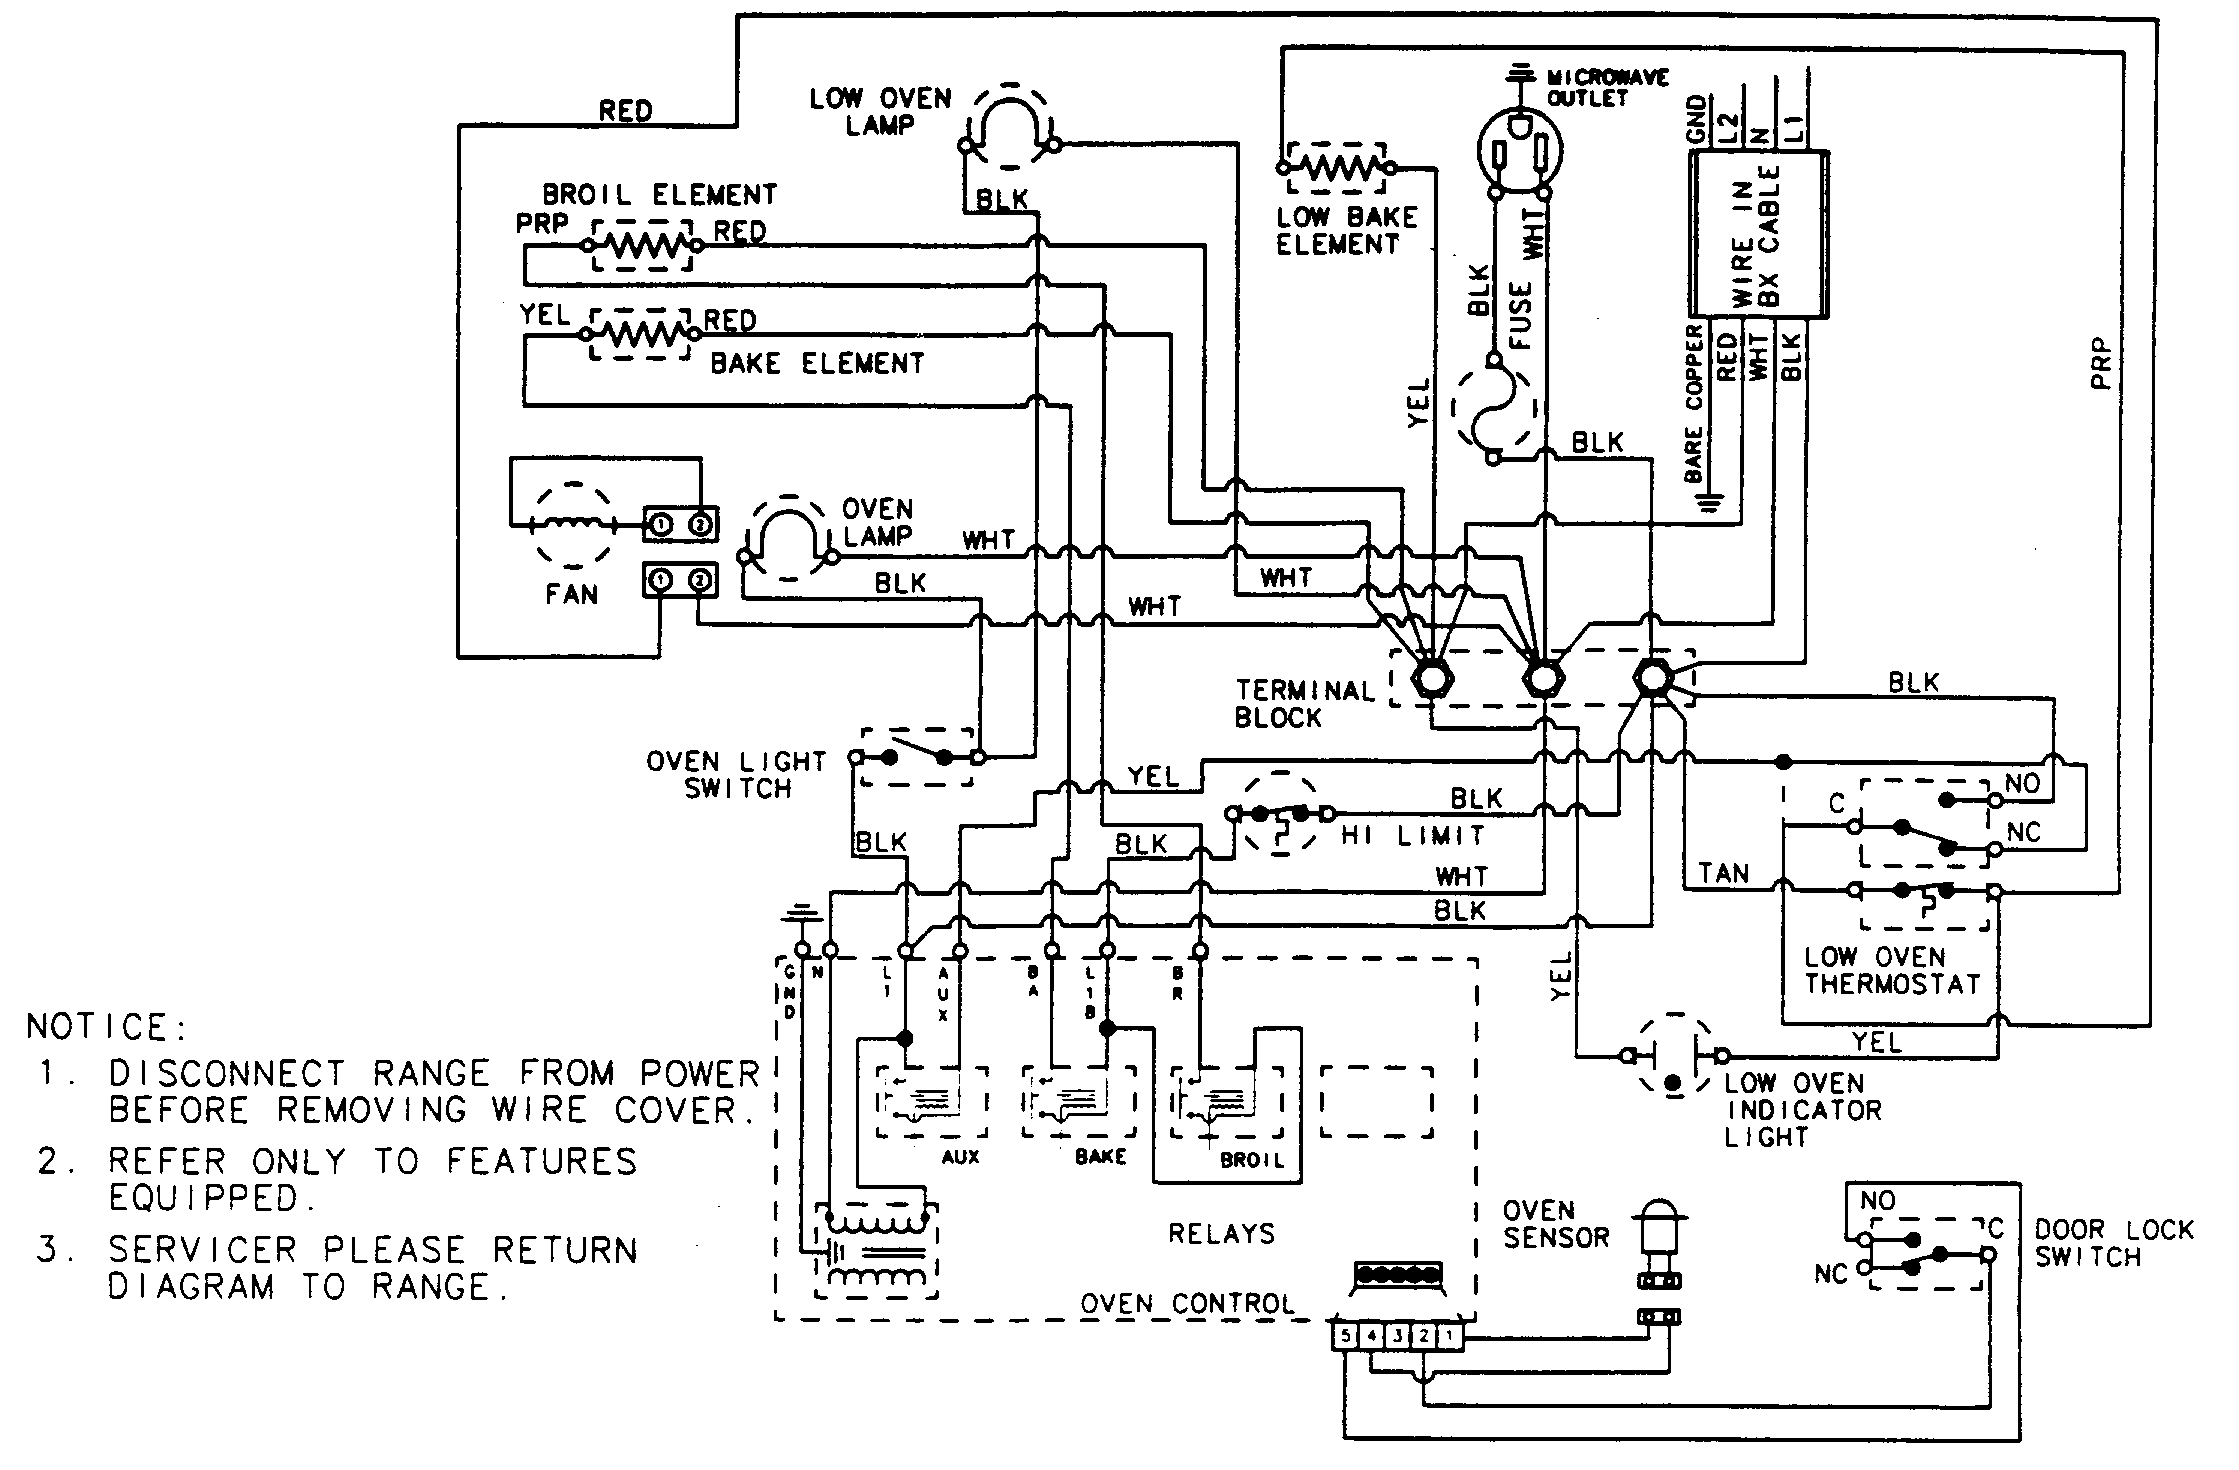 dacor wiring diagram wiring diagram online Wall Oven Wiring Diagram dacor range wiring diagram schematic diagram panasonic wiring diagram dacor range wiring diagram wiring library ge